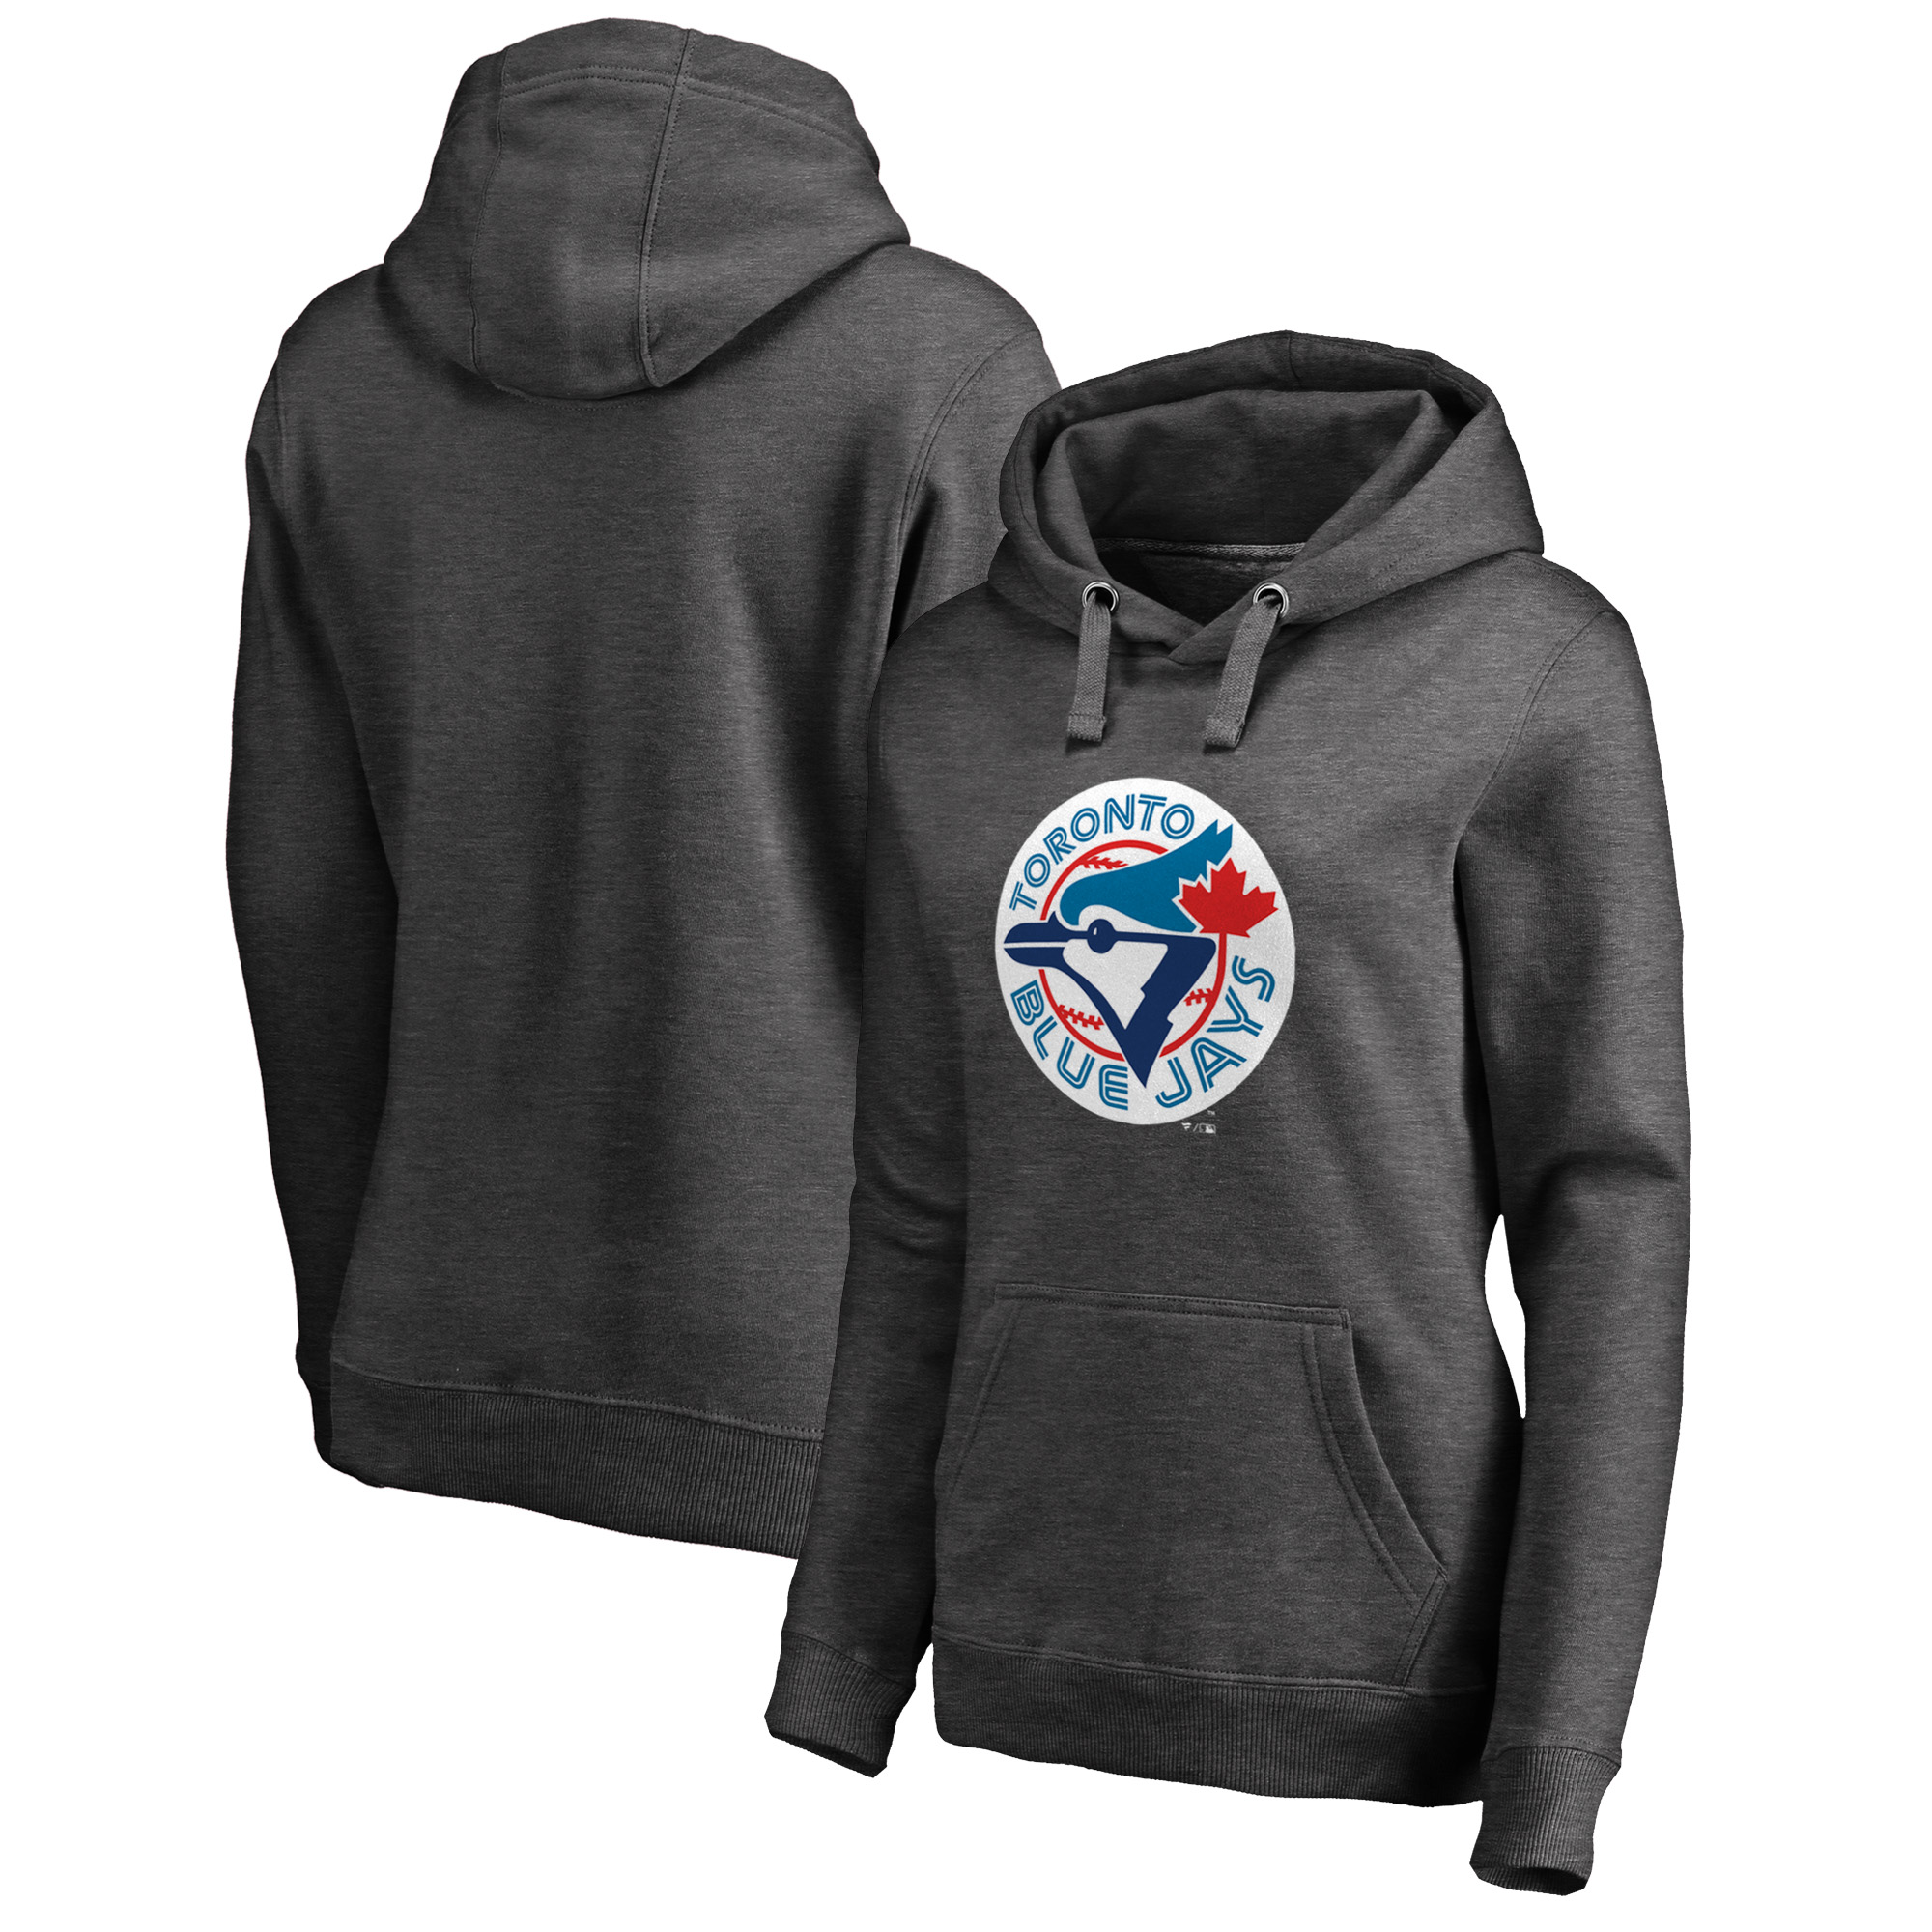 Toronto Blue Jays Fanatics Branded Women's Plus Size Cooperstown Collection Huntington Pullover Hoodie - Heathered Gray